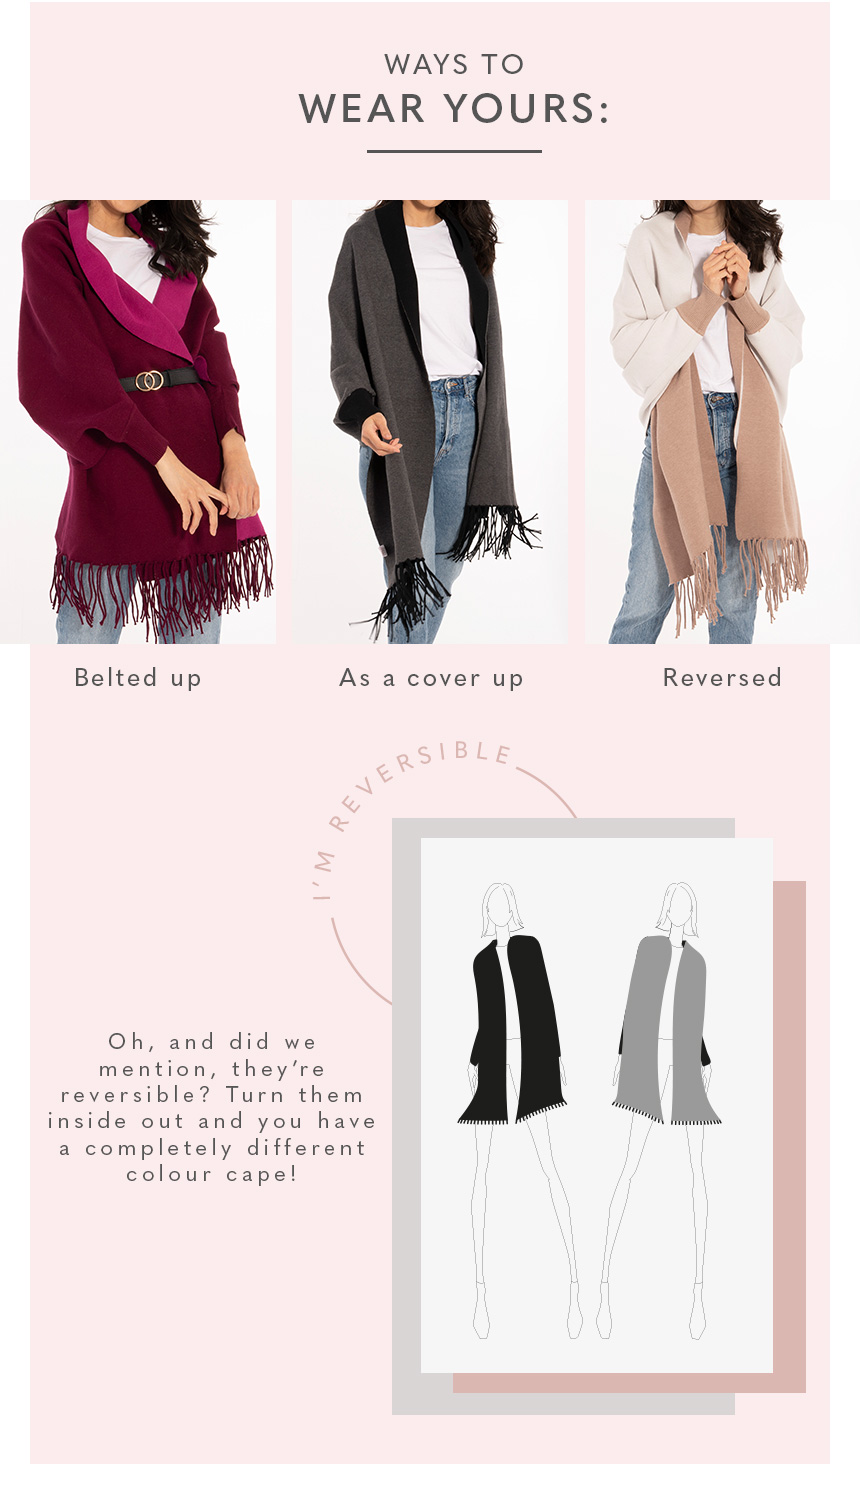 Ways to wear your: Belted up, as a cover up, reversed. Oh, and did we mention, they're reversible? Turn them inside out and you have a completely different colour cape!